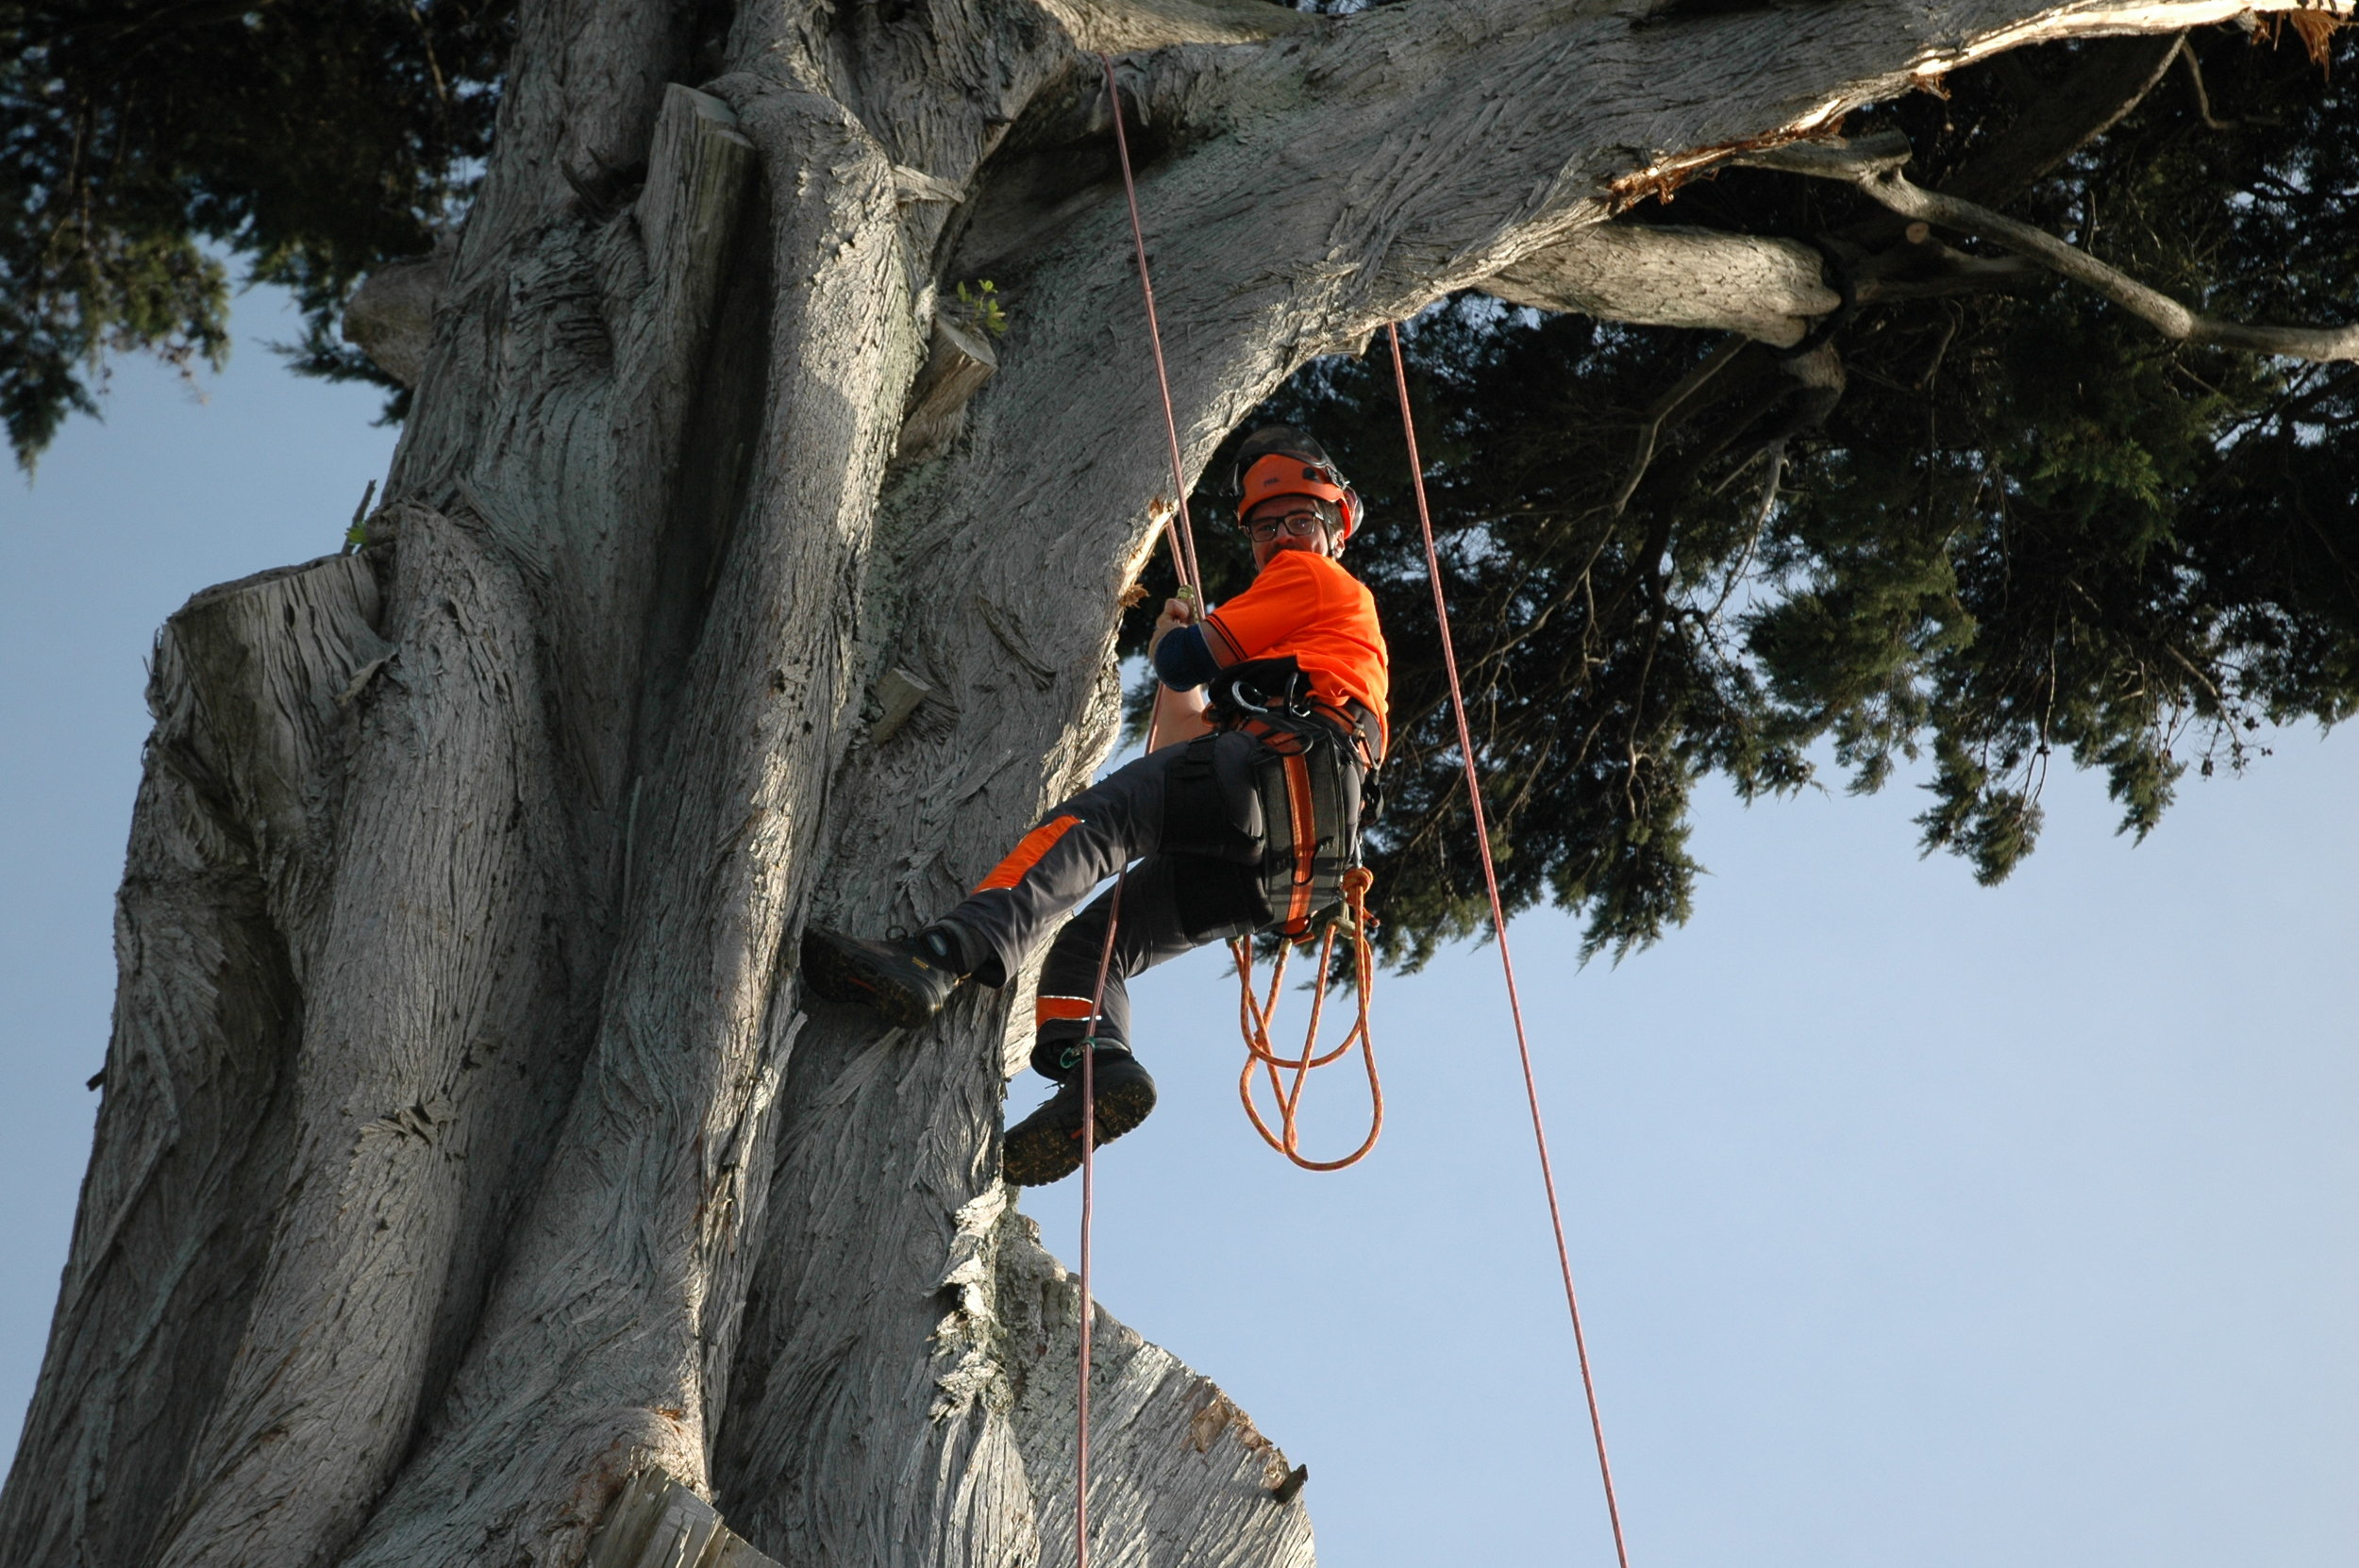 24hr Emergency Service & Insurance. - Coastal Tree Services Wellington Ltd are able to respond 24hrs a day, 7 days a week to emergency call-out tree work.Fully InsuredCoastal Tree Services Wellington Ltd carries $1,000,000.00 CFS Liability Insurance.Coastal Tree Services has full public liability insurance and operates to the New Zealand Health and Safety standards, following best practice guidelines. We are also Council approved for Health and Safety on site.